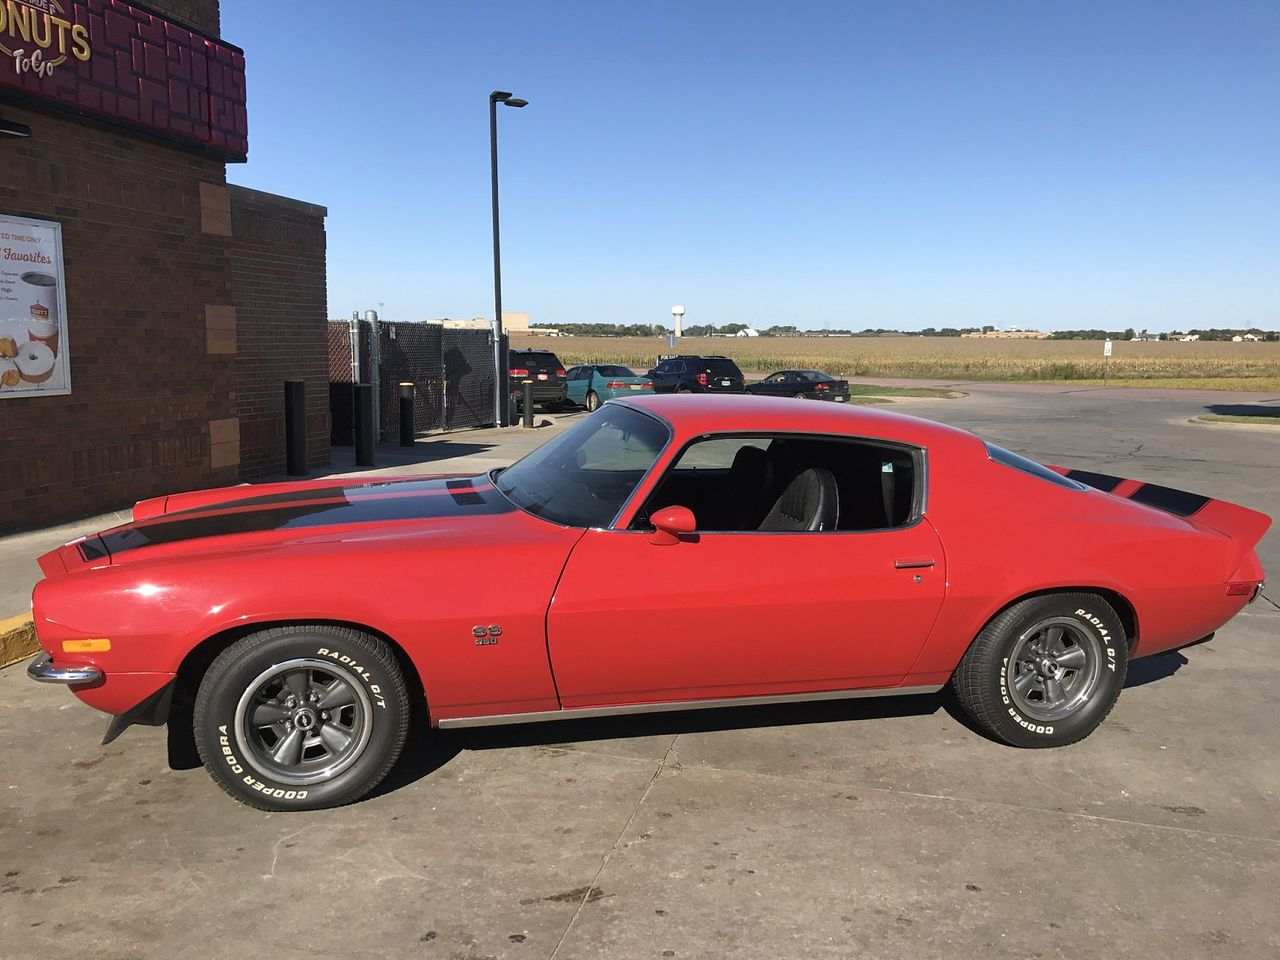 1971 Chevrolet Camaro RS-SS | Sioux Falls, SD, Red & Orange, Rear Wheel